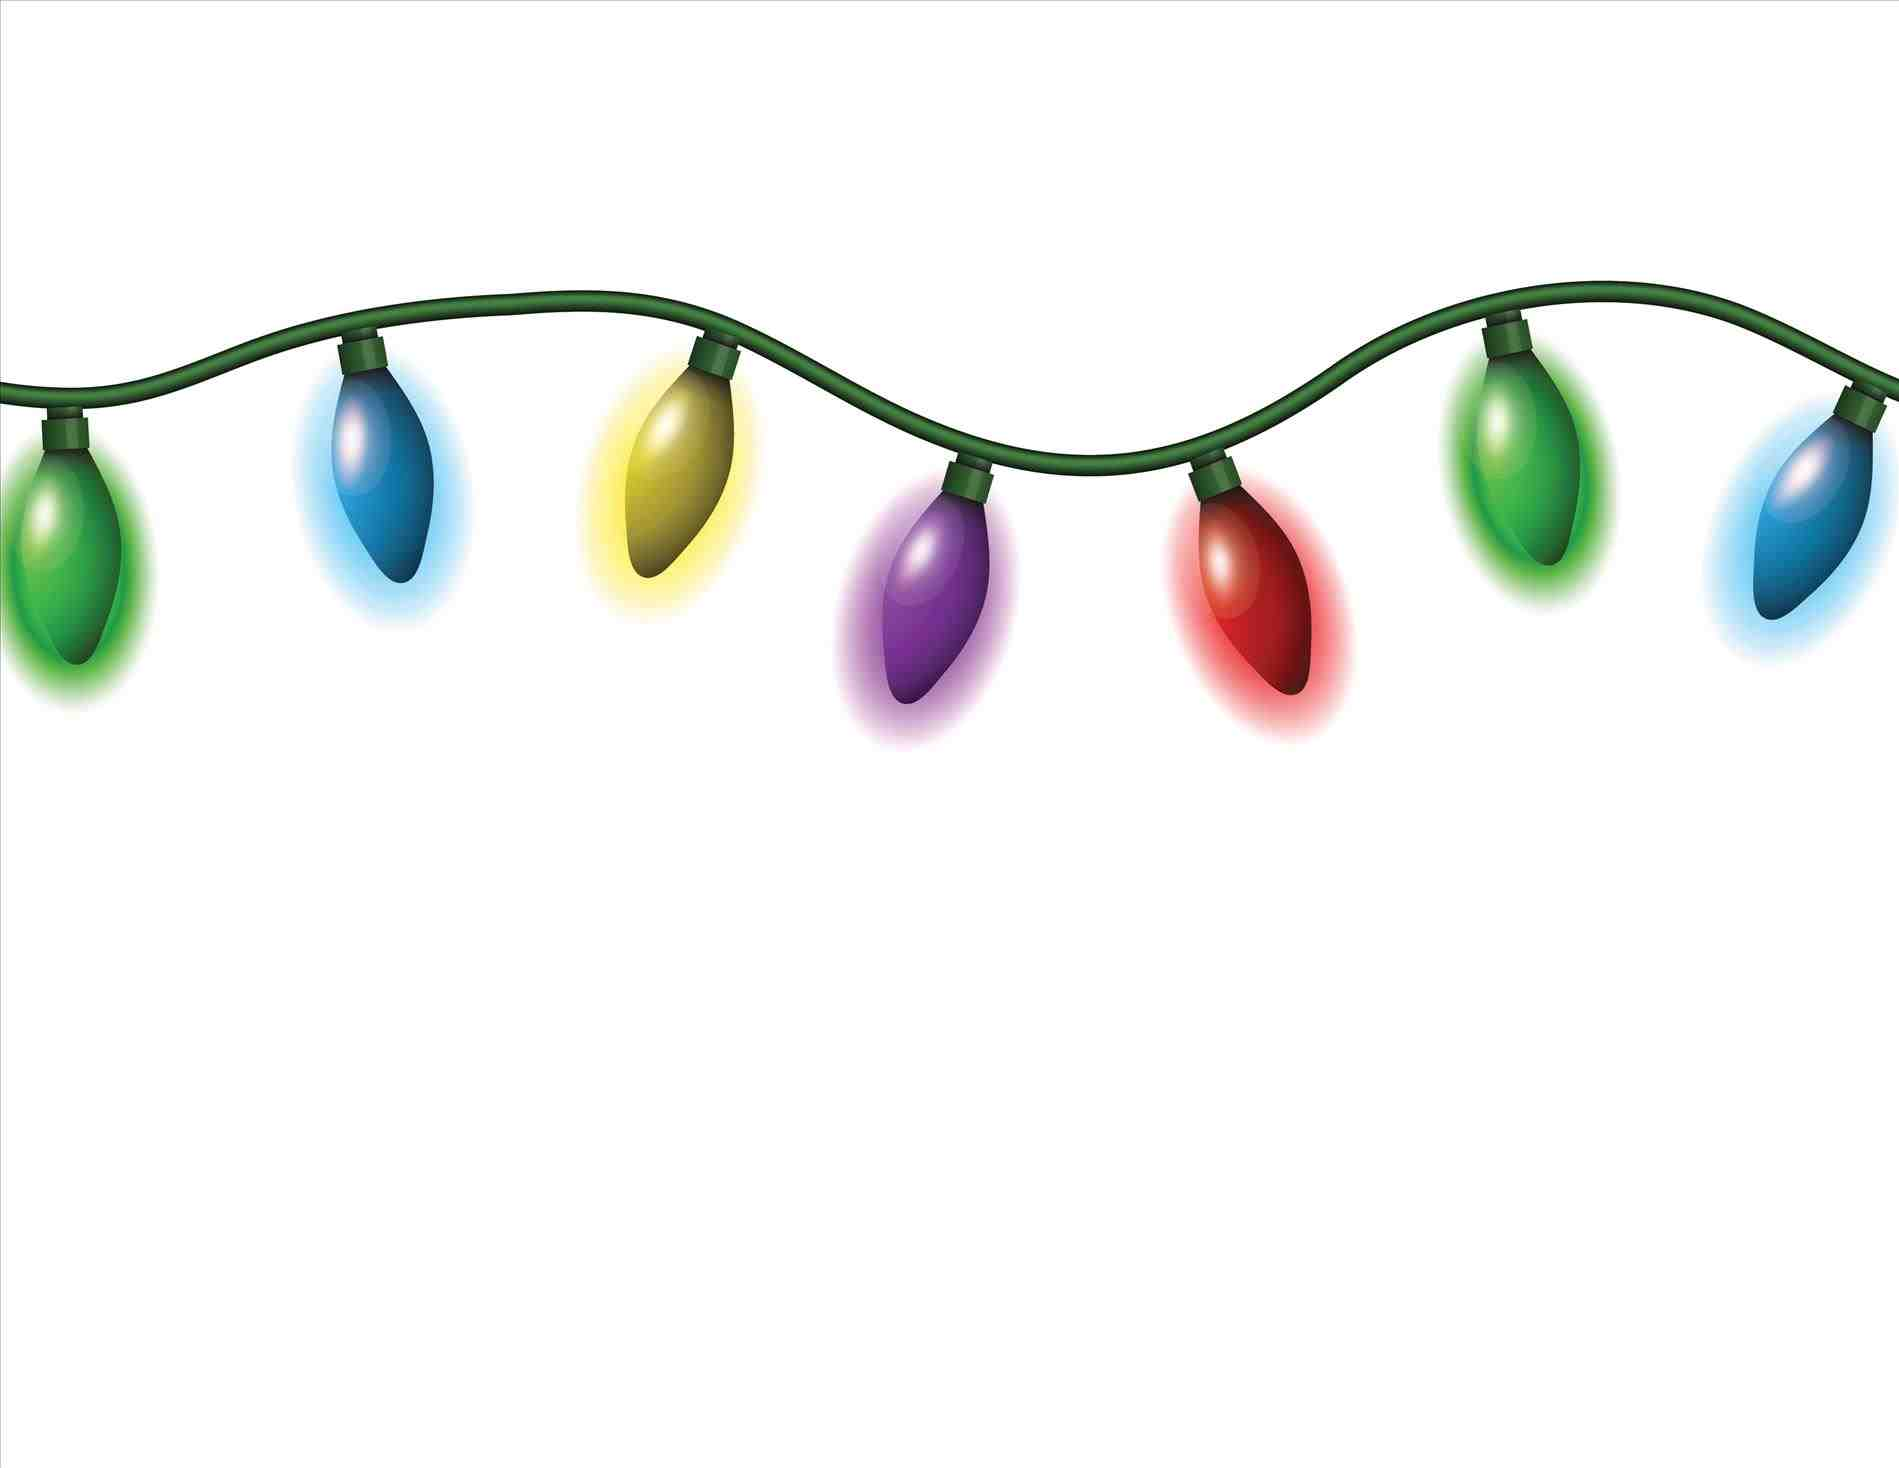 1899x1468 Lights Clipart Clip Art String Of Xtras String Christmas Lights